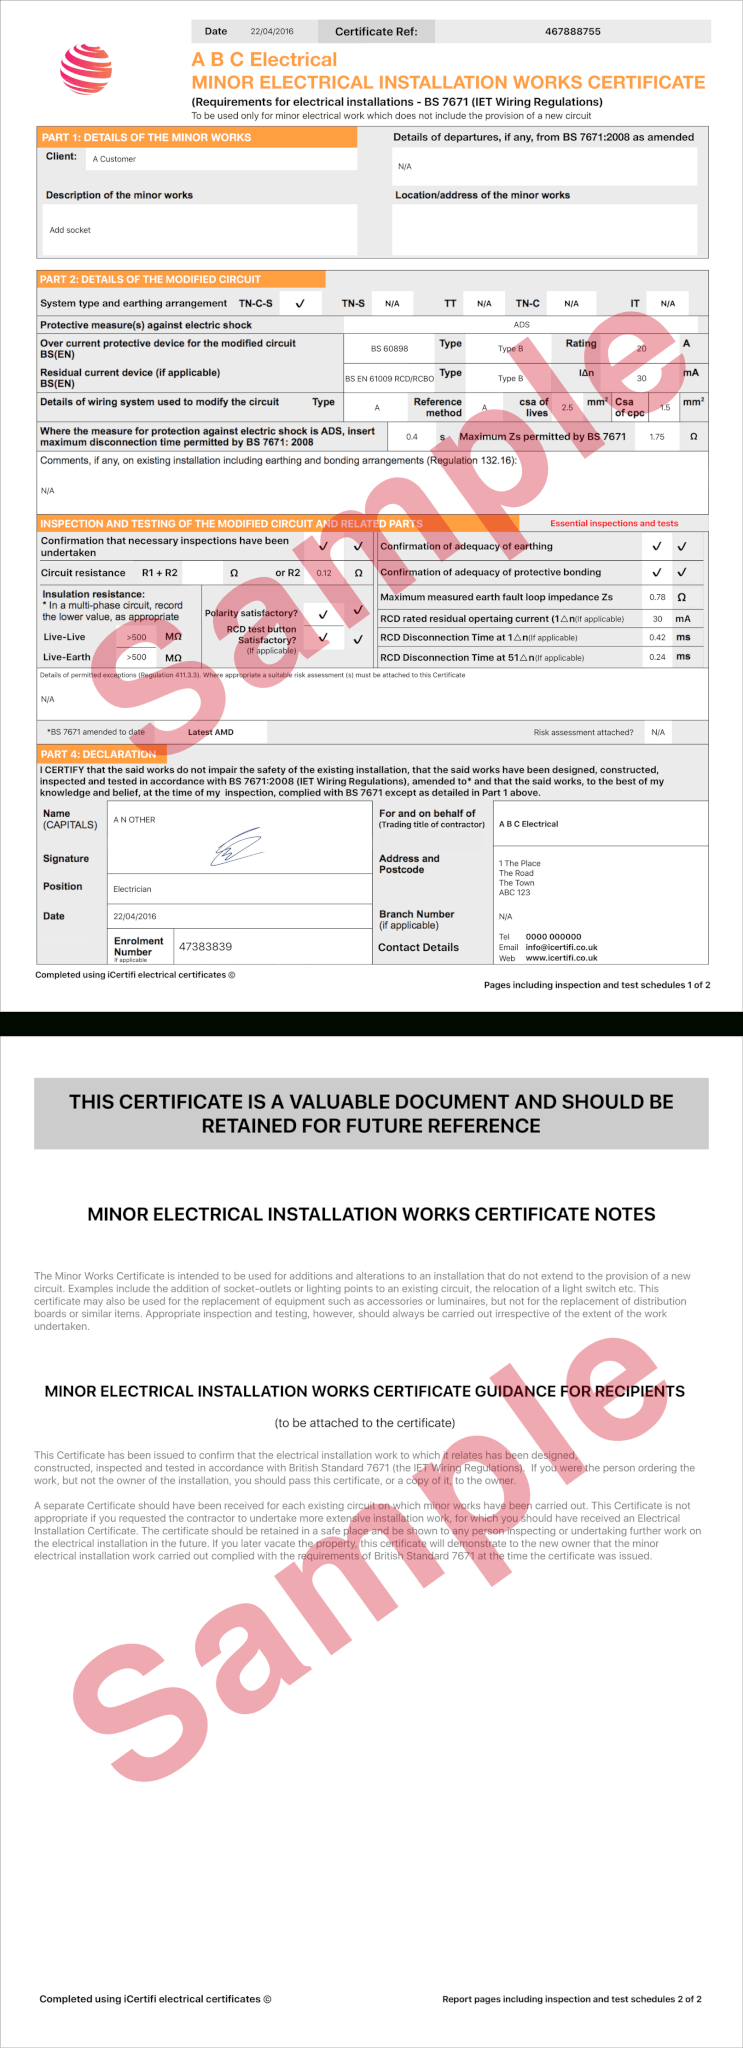 Electrical Certificate  Example Minor Works Certificate  Icertifi Regarding Electrical Minor Works Certificate Template